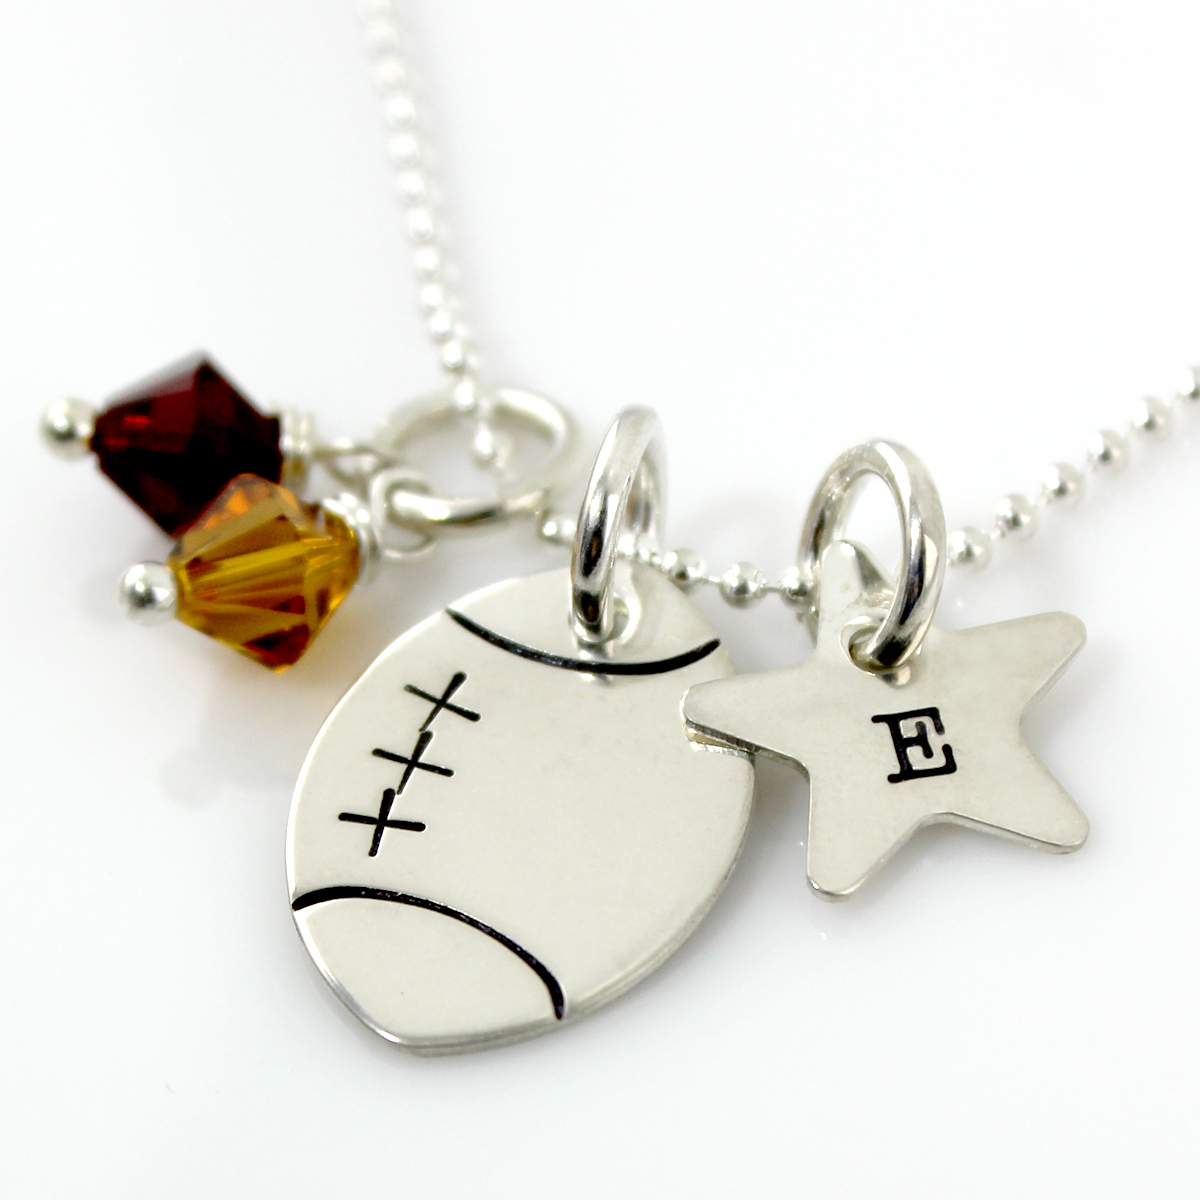 Personalized Football Necklace with Star Charm